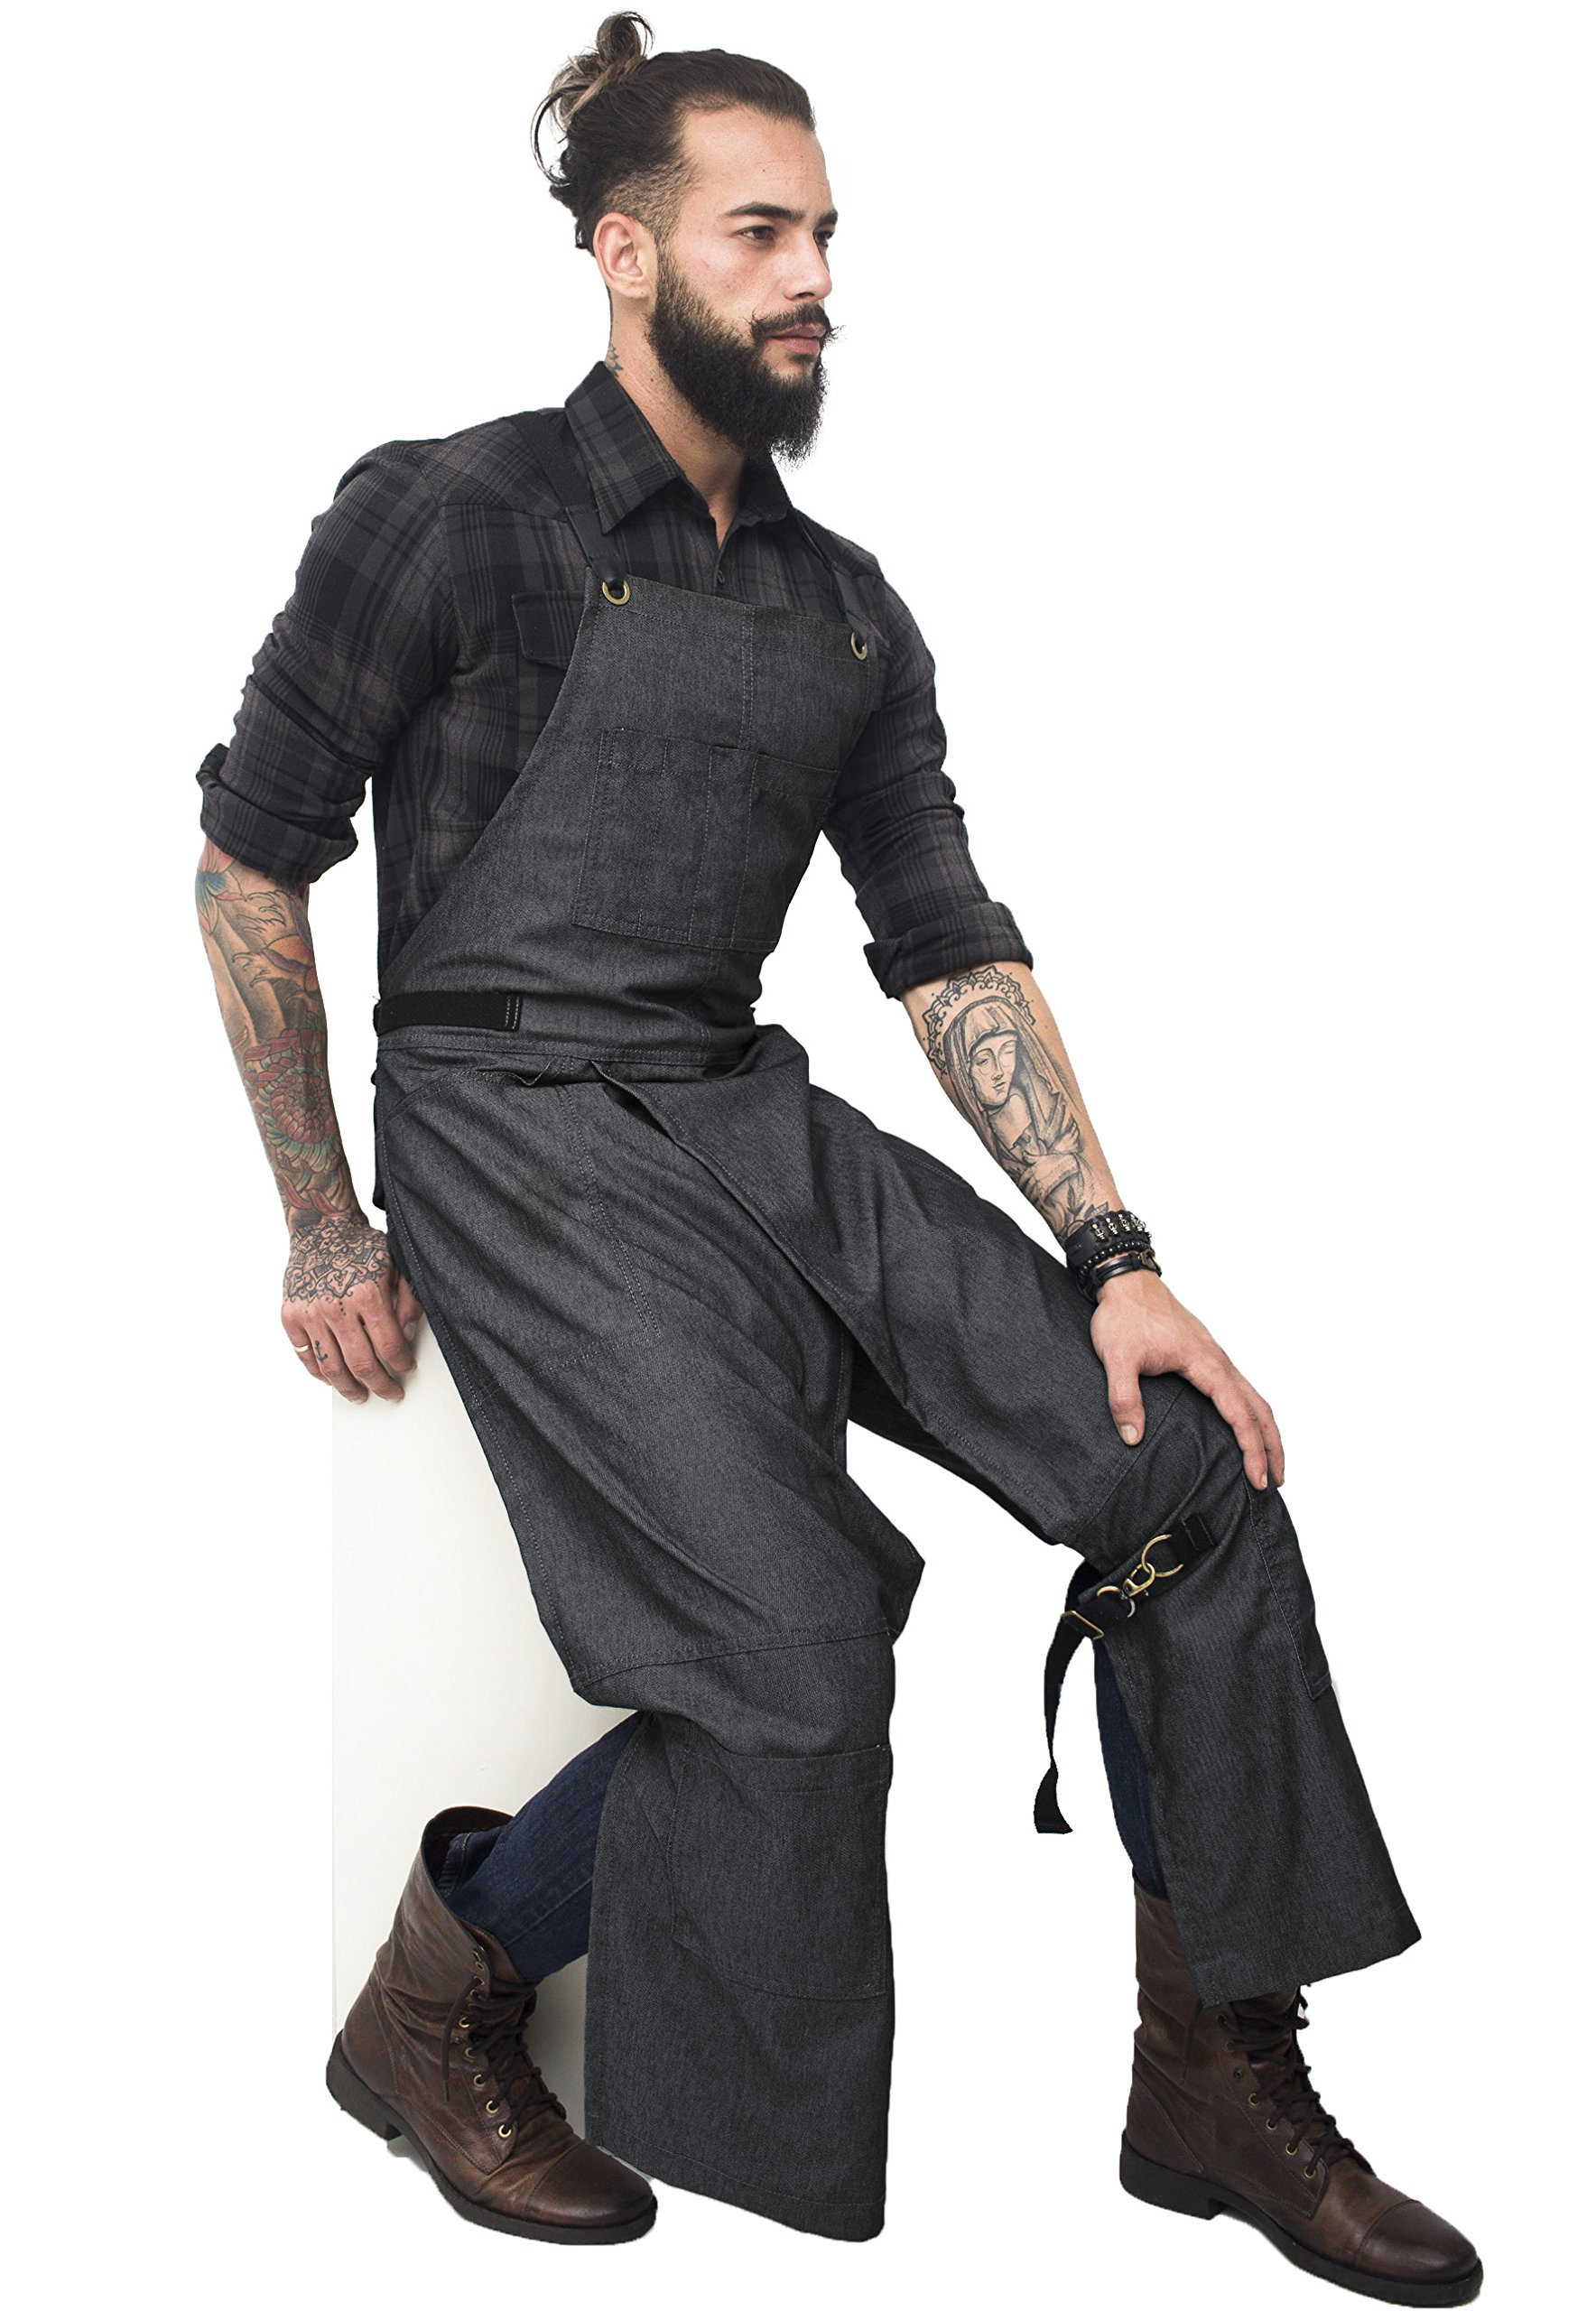 Under NY Sky Pottery Original Gray Apron - Full Cover Cross-Back, Durable Denim, Leather Reinforcement and Overlapping Split-Leg - Adjustable for Men and Women - Pro Pottery Artist, Mechanic by Under NY Sky